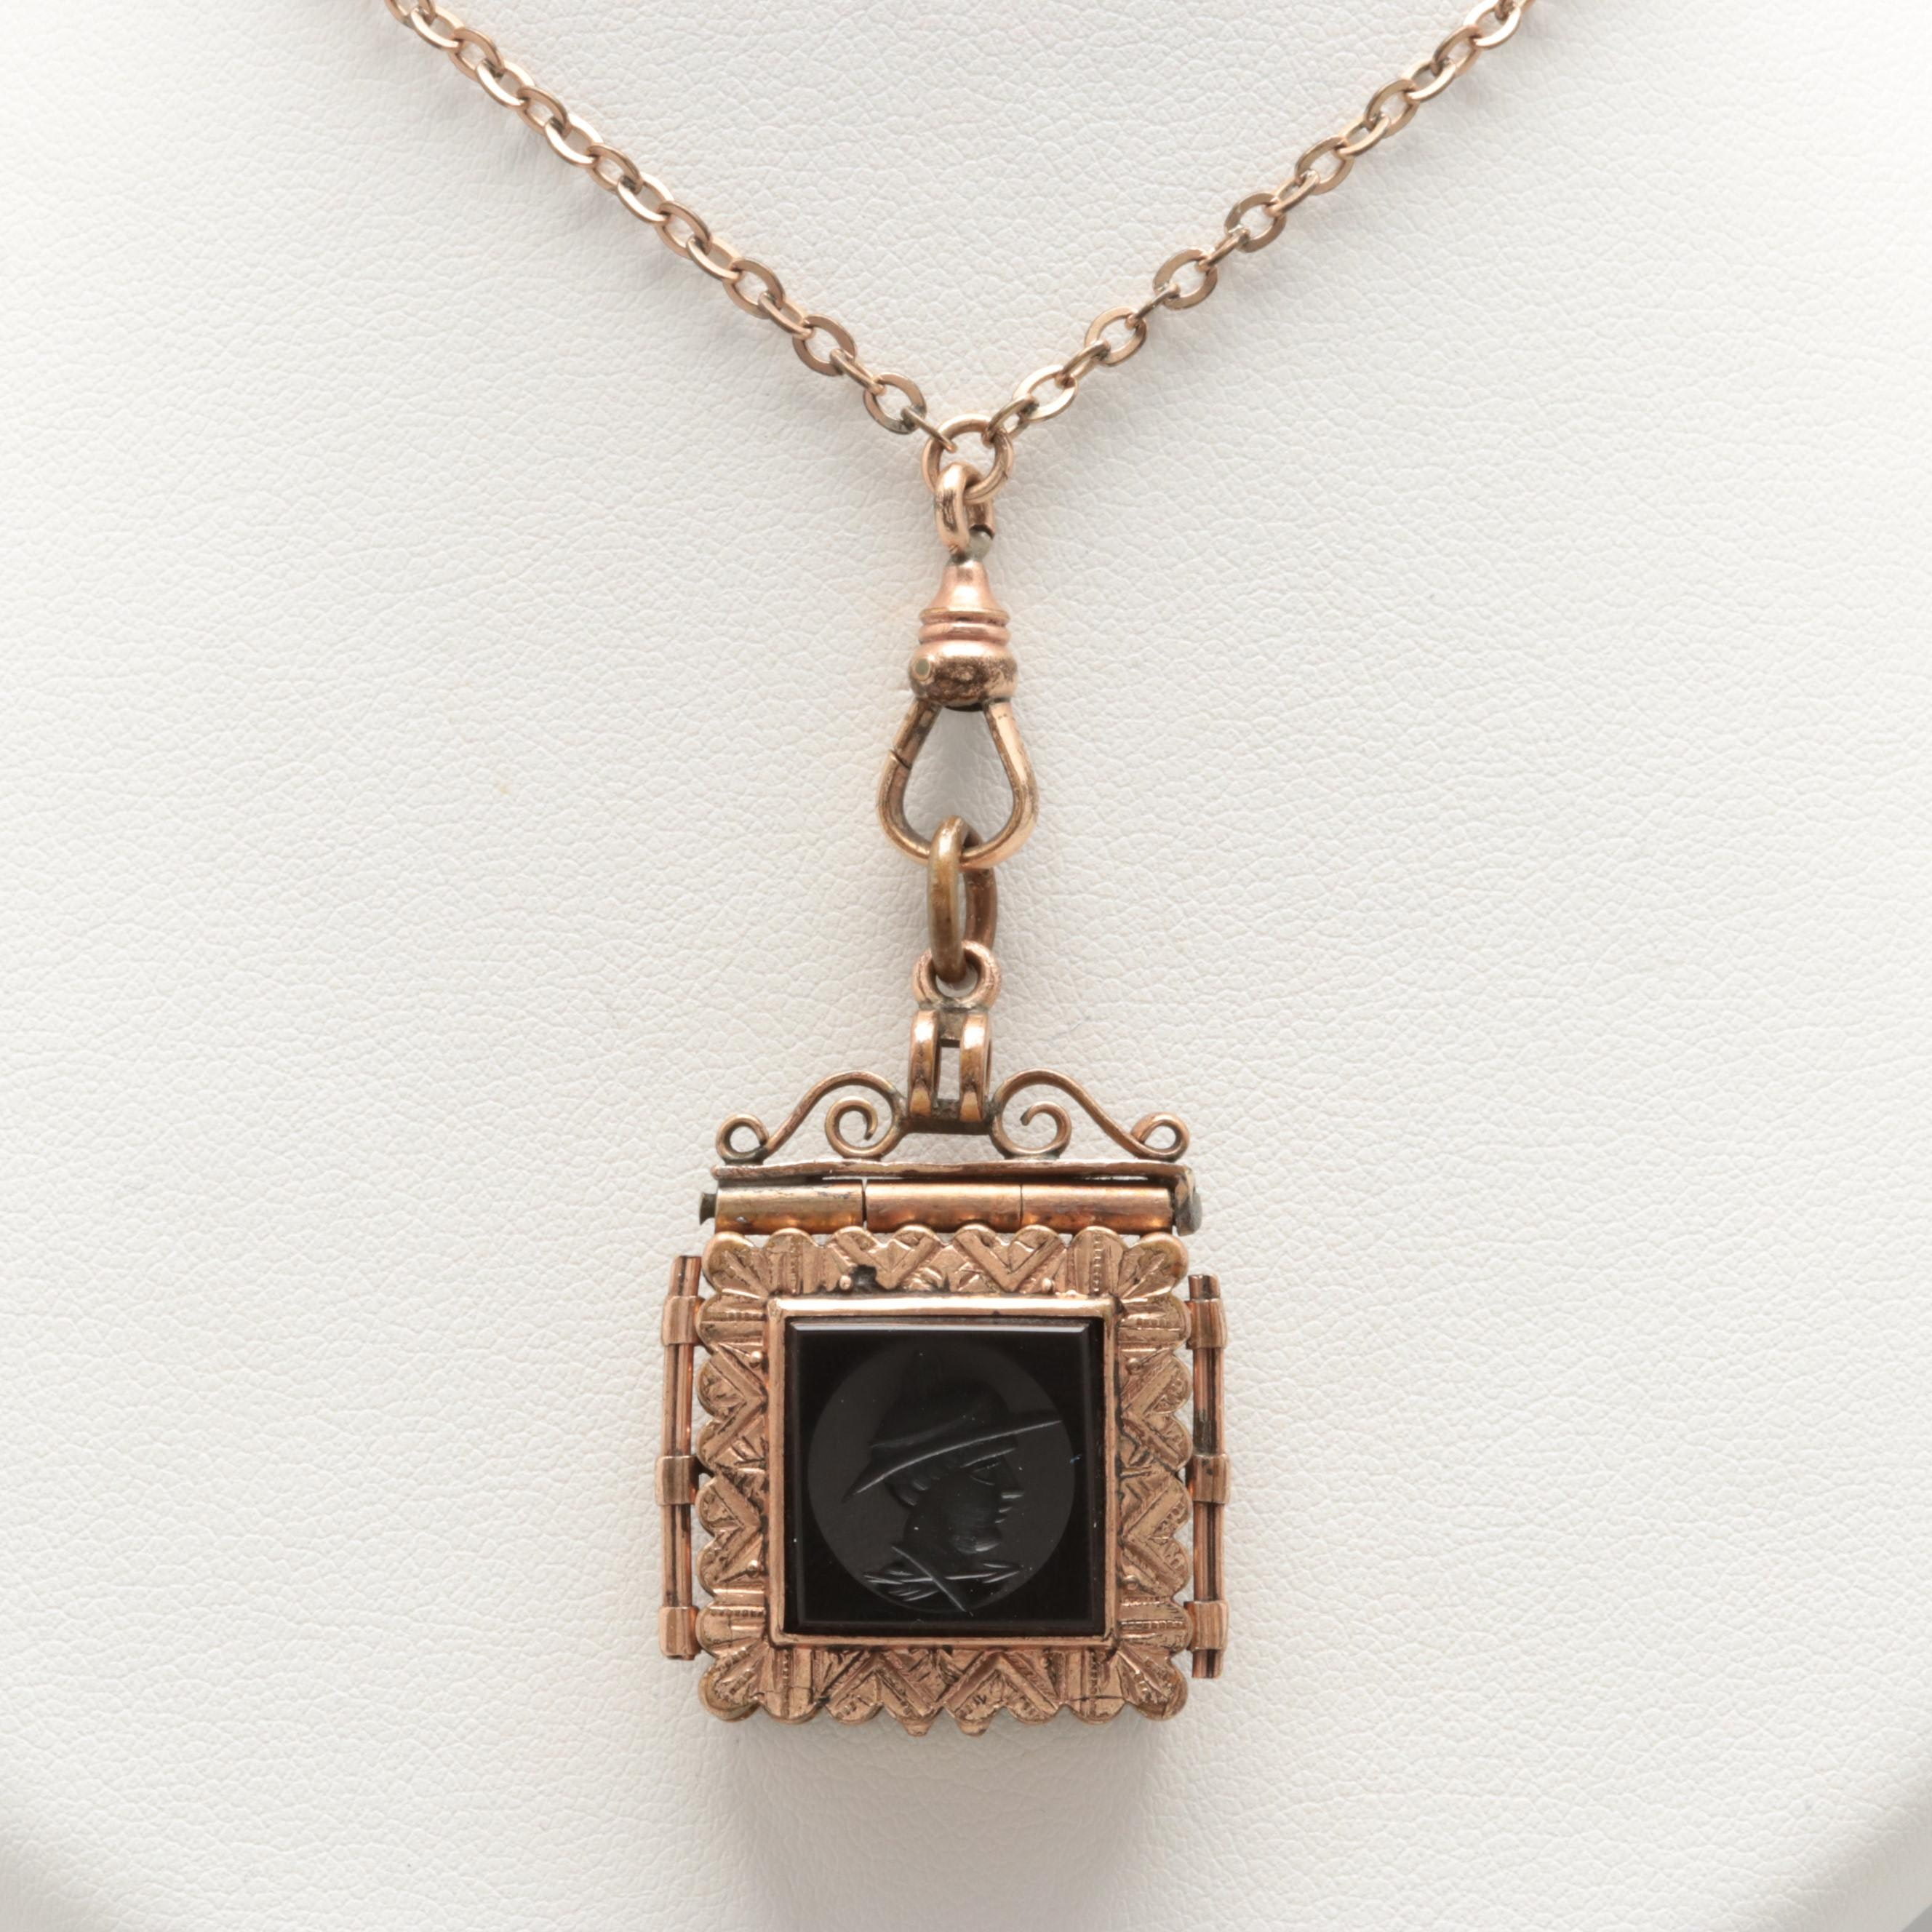 Victorian B & Co. Intaglio Onyx Locket With Glass and Imitation Pearl Fob Chain